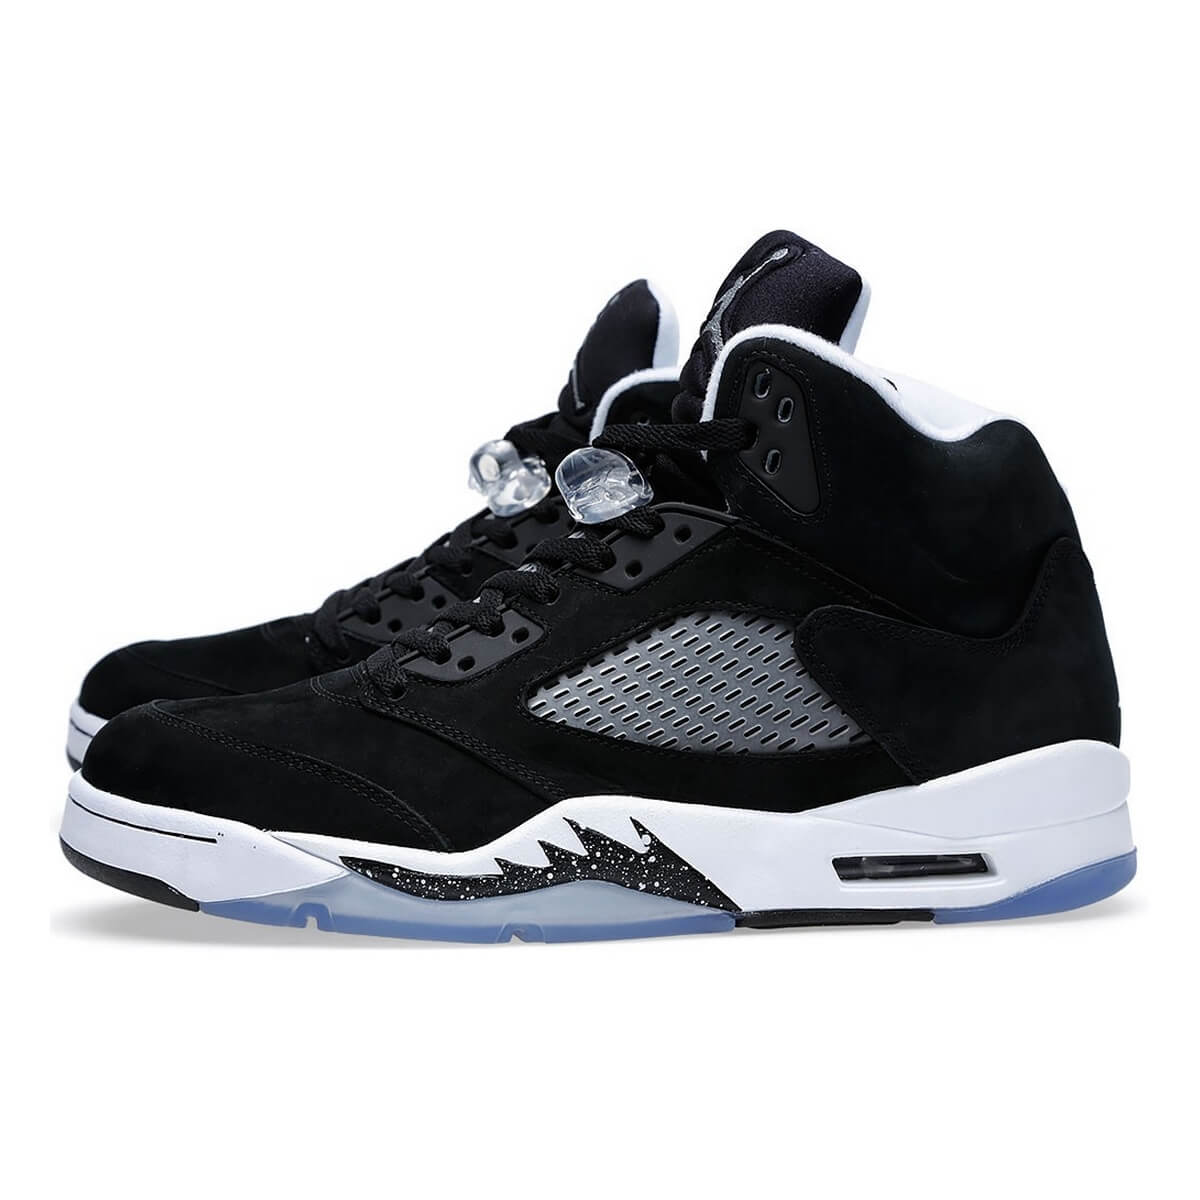 brand new a547a 4cb48 Nike Air Jordan 5 Retro Oreo 136027-035